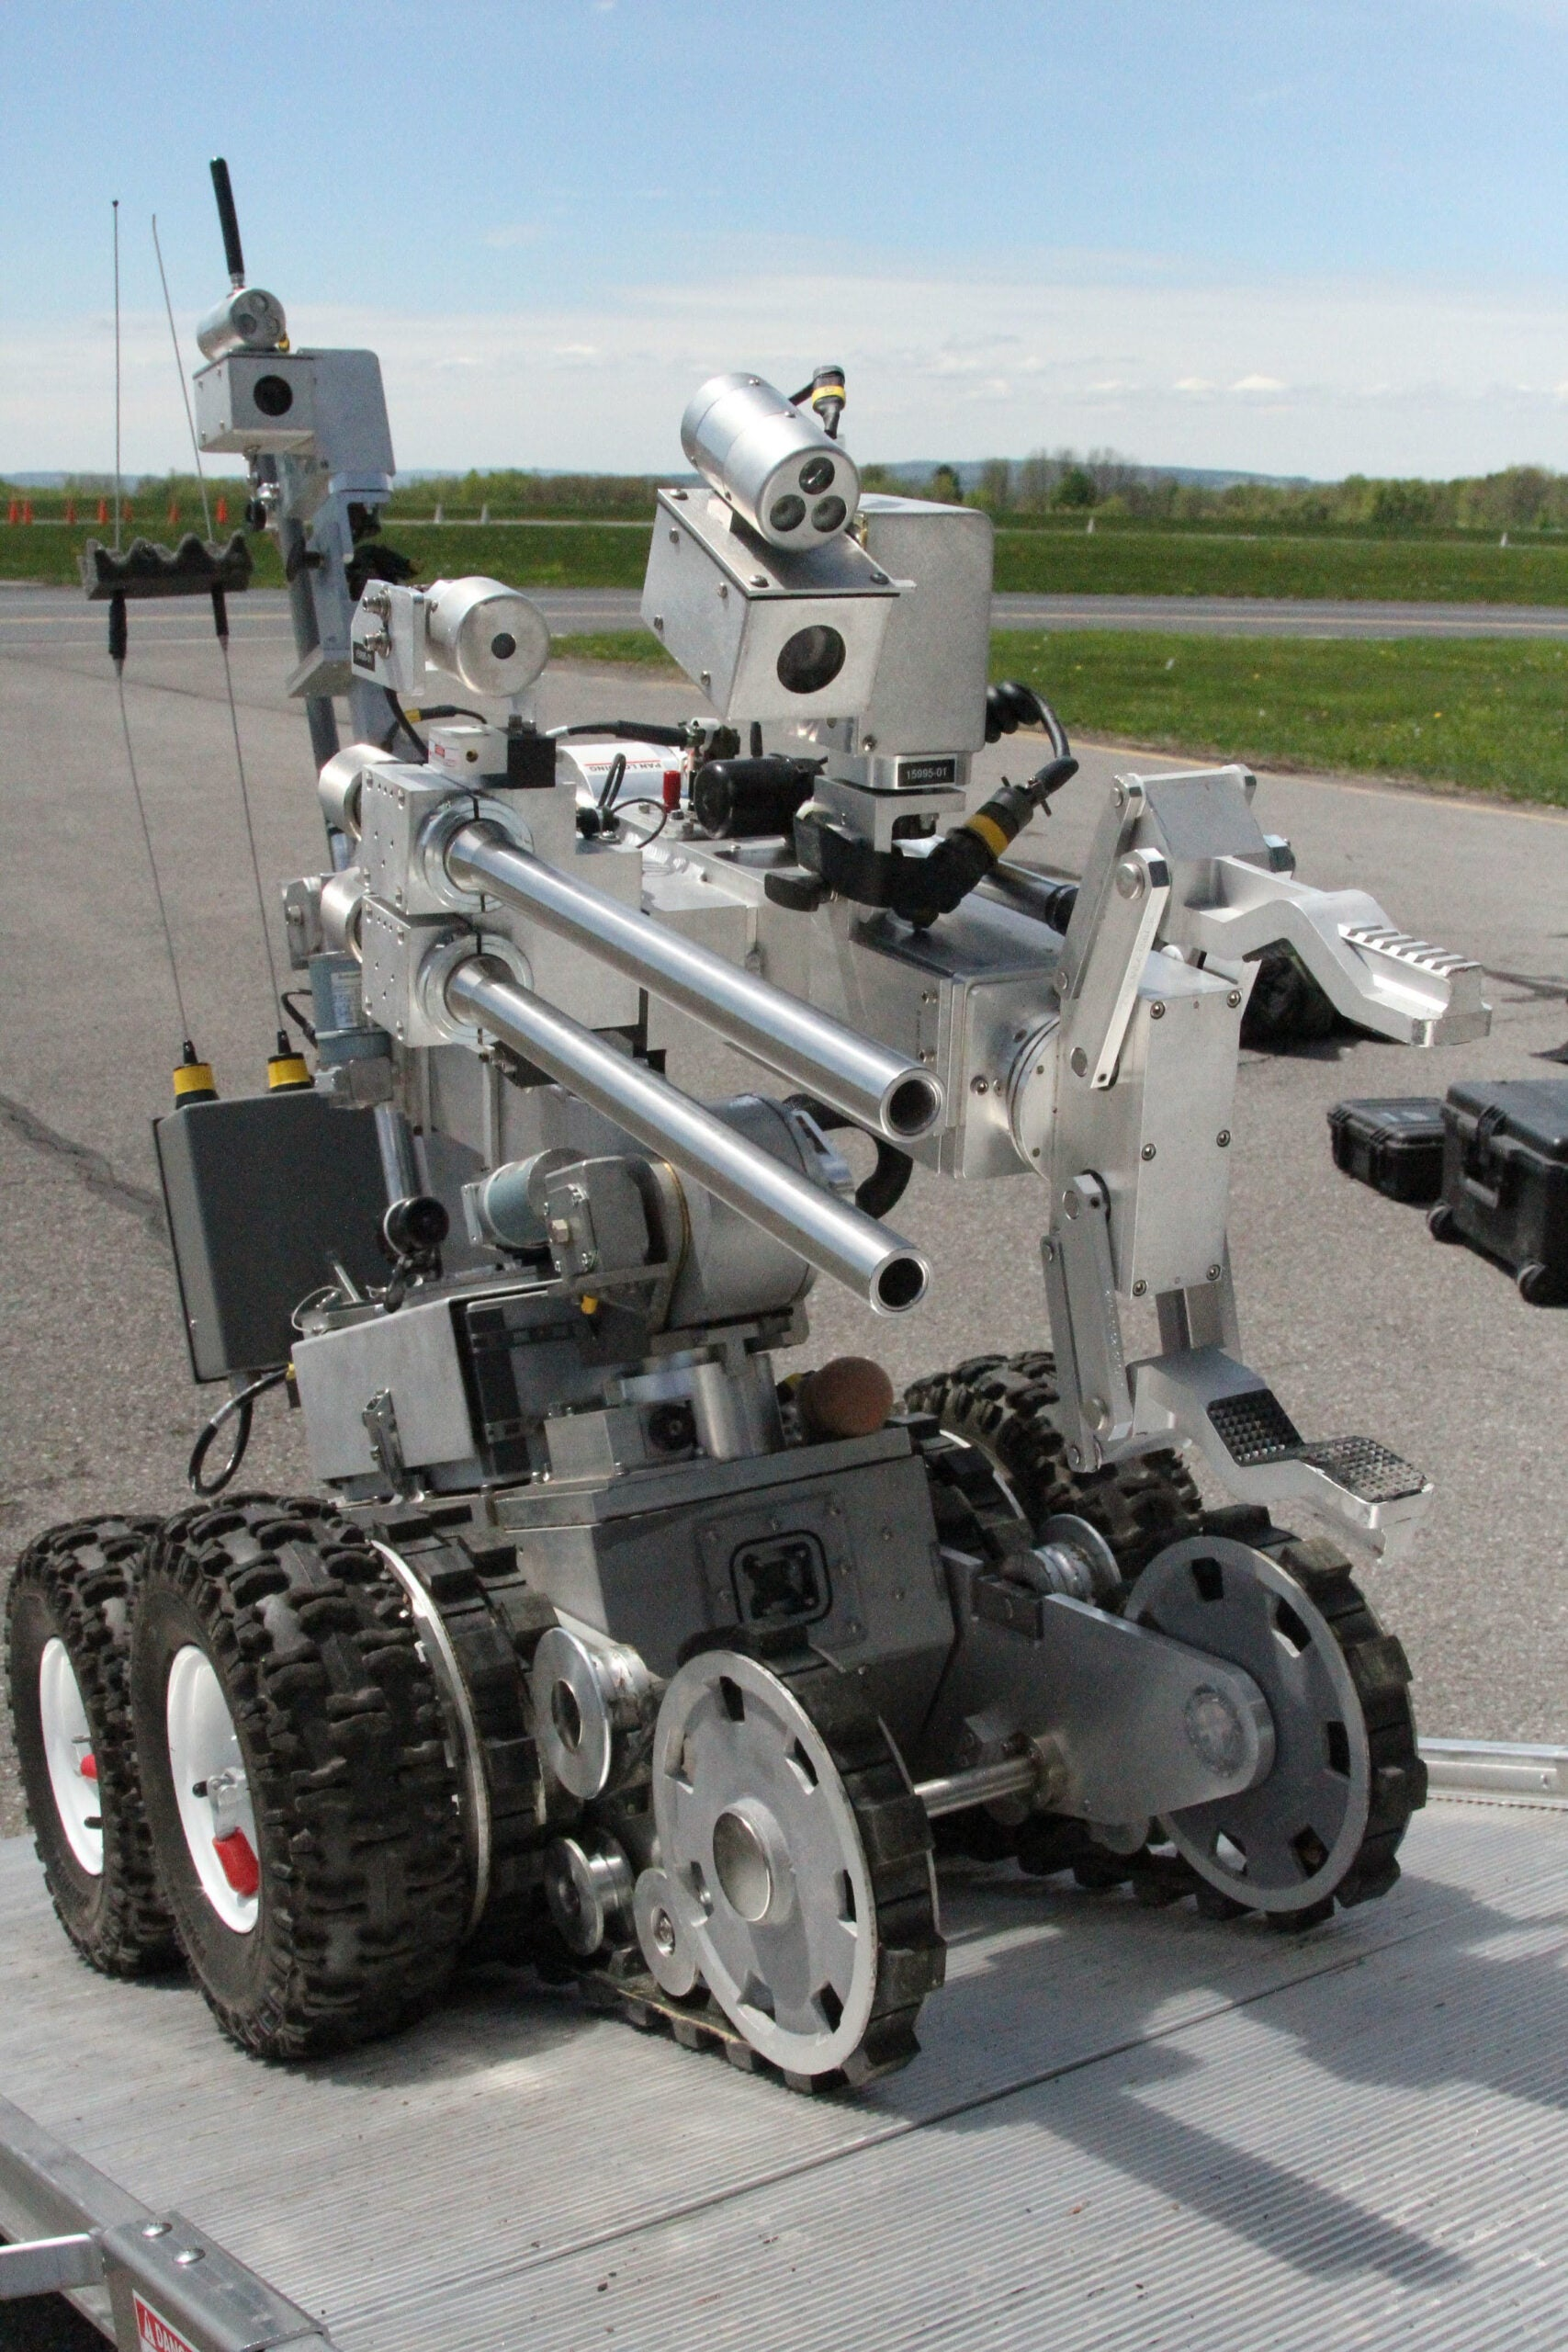 Bomb Squad Robot Drives Up Ramp